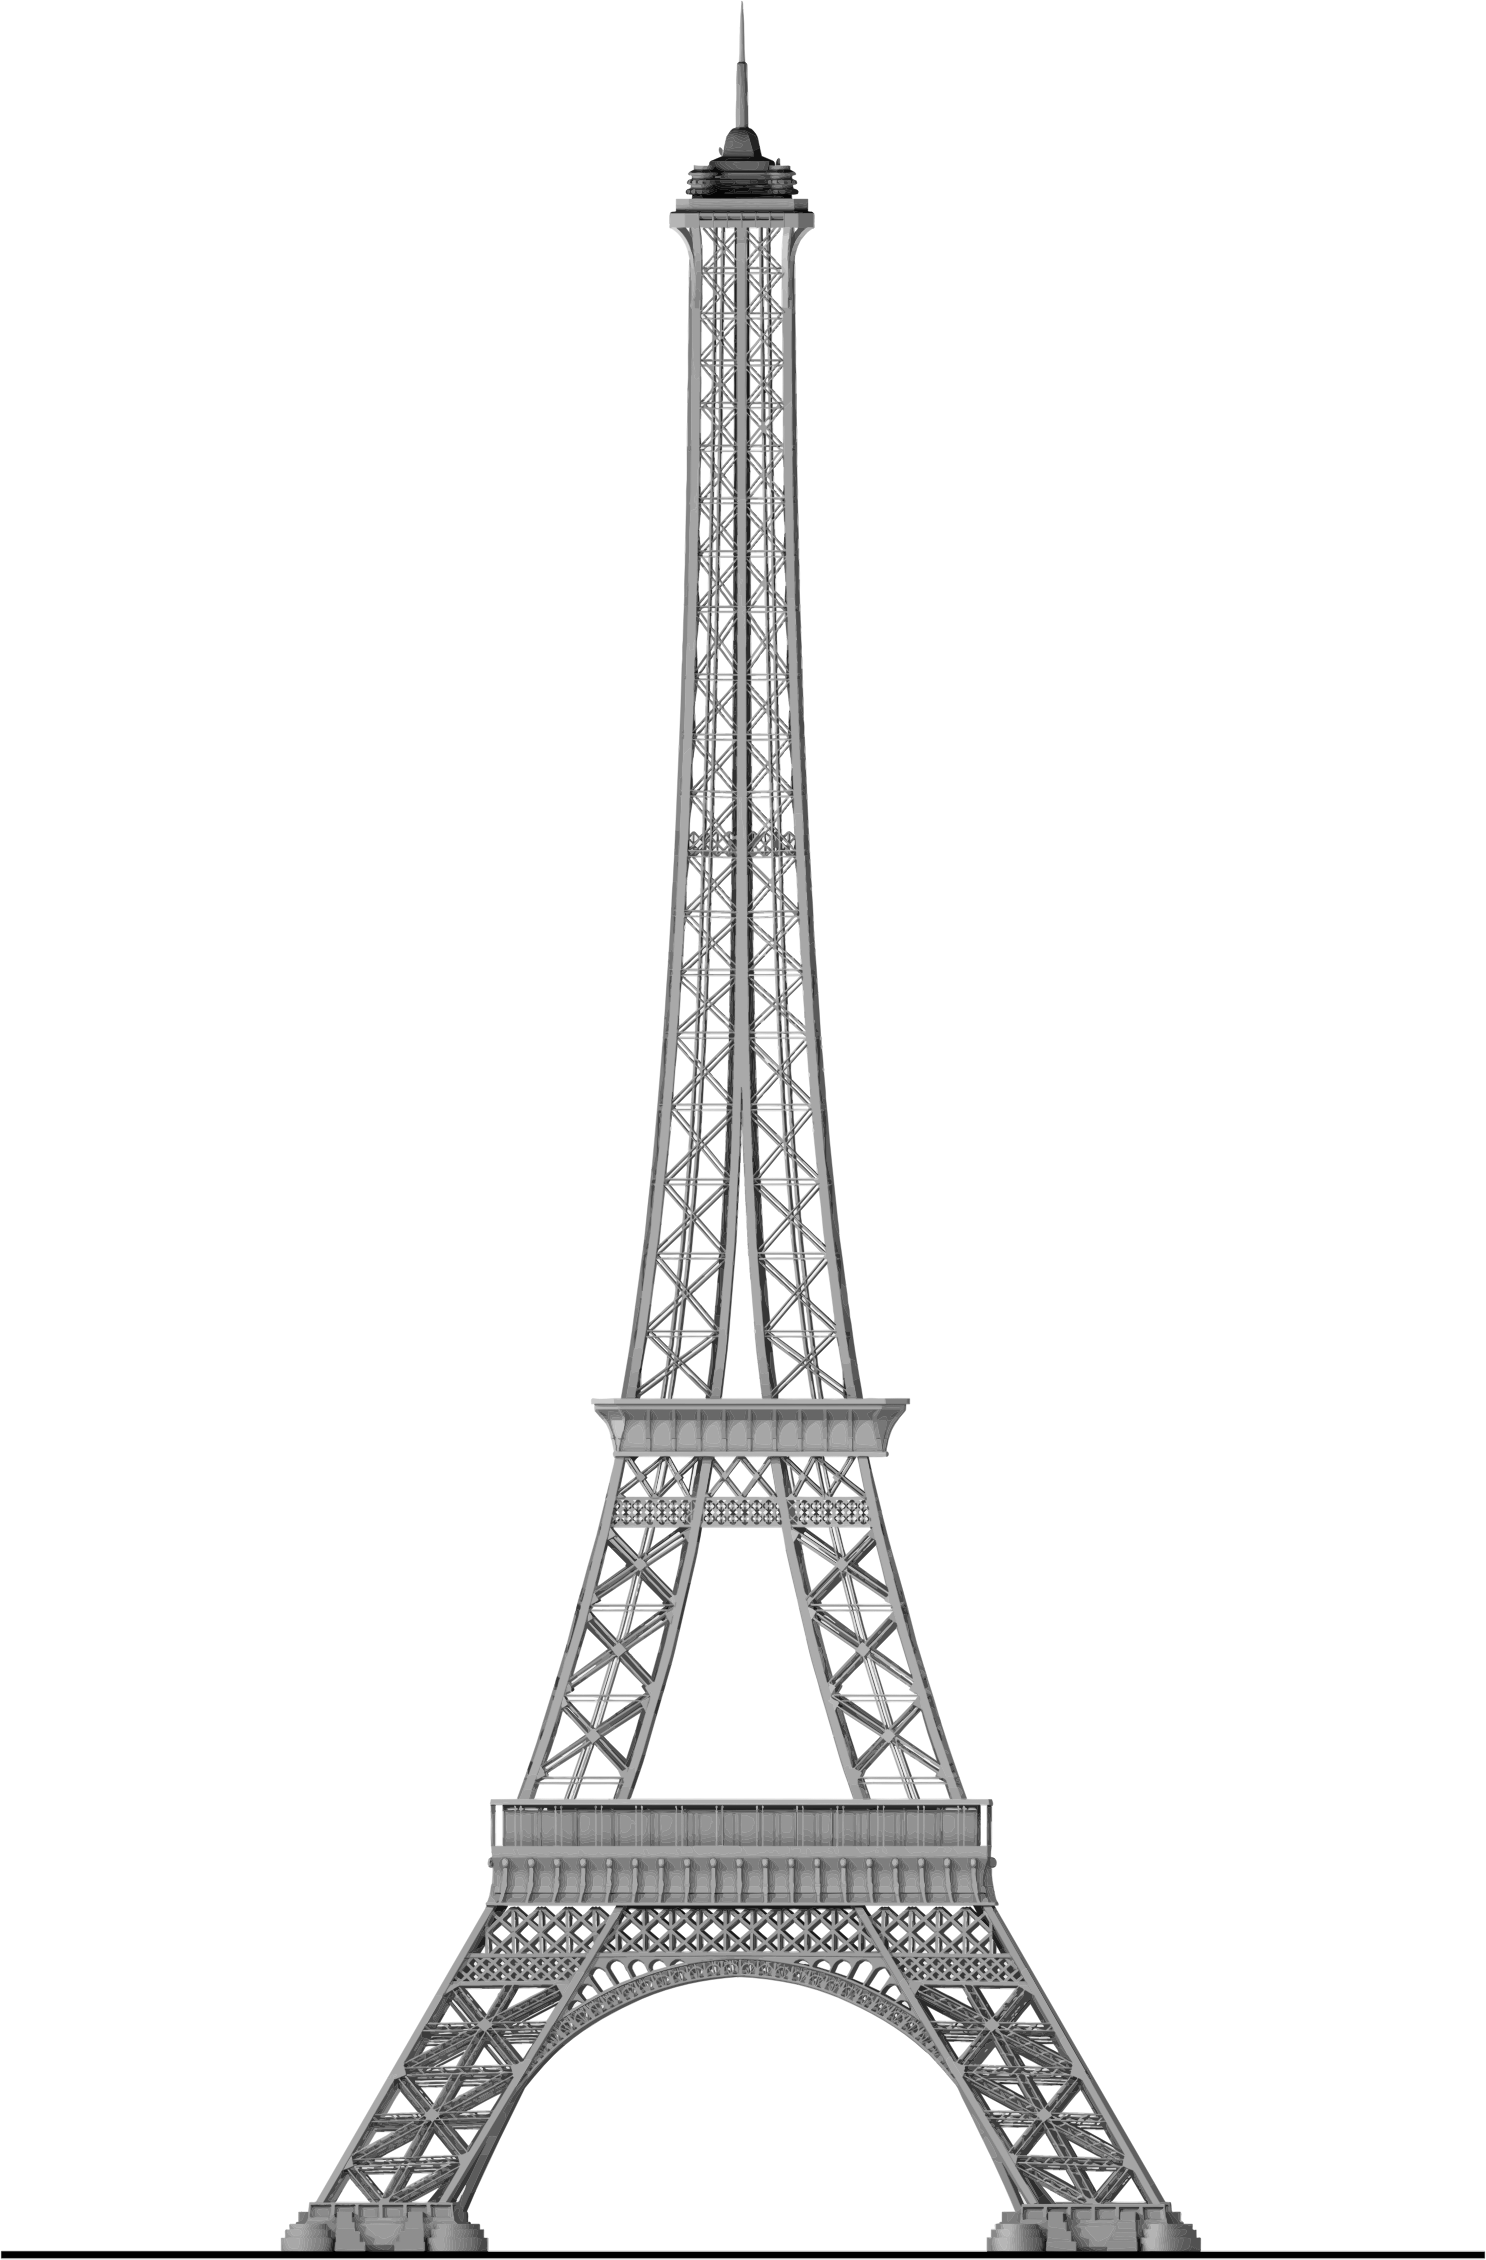 Detailed Eiffel Tower Trace 2 by GDJ